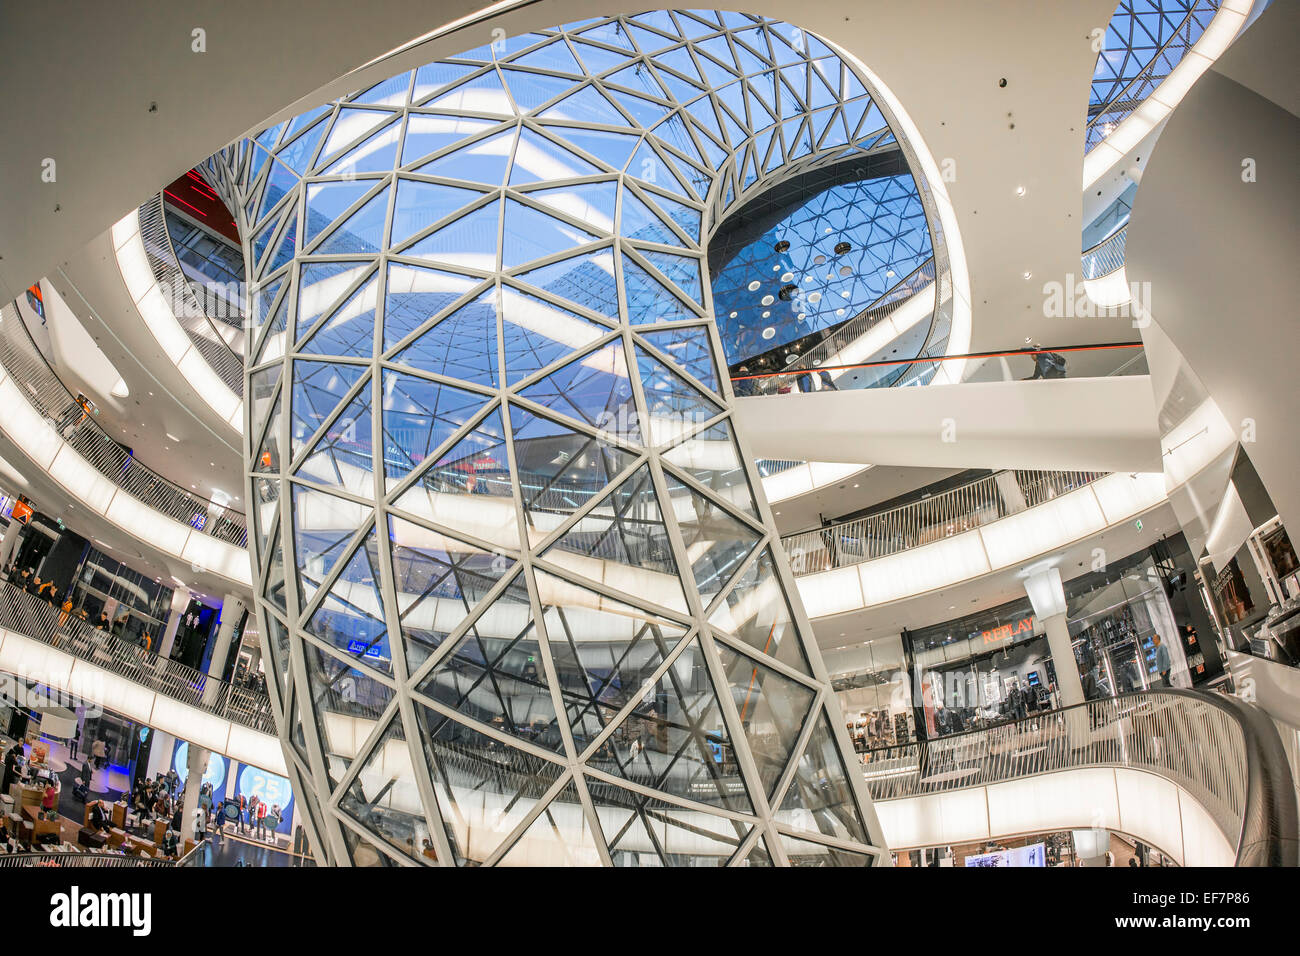 myzeil shopping mall modern architecture frankfurt hessen stock photo 78232454 alamy. Black Bedroom Furniture Sets. Home Design Ideas